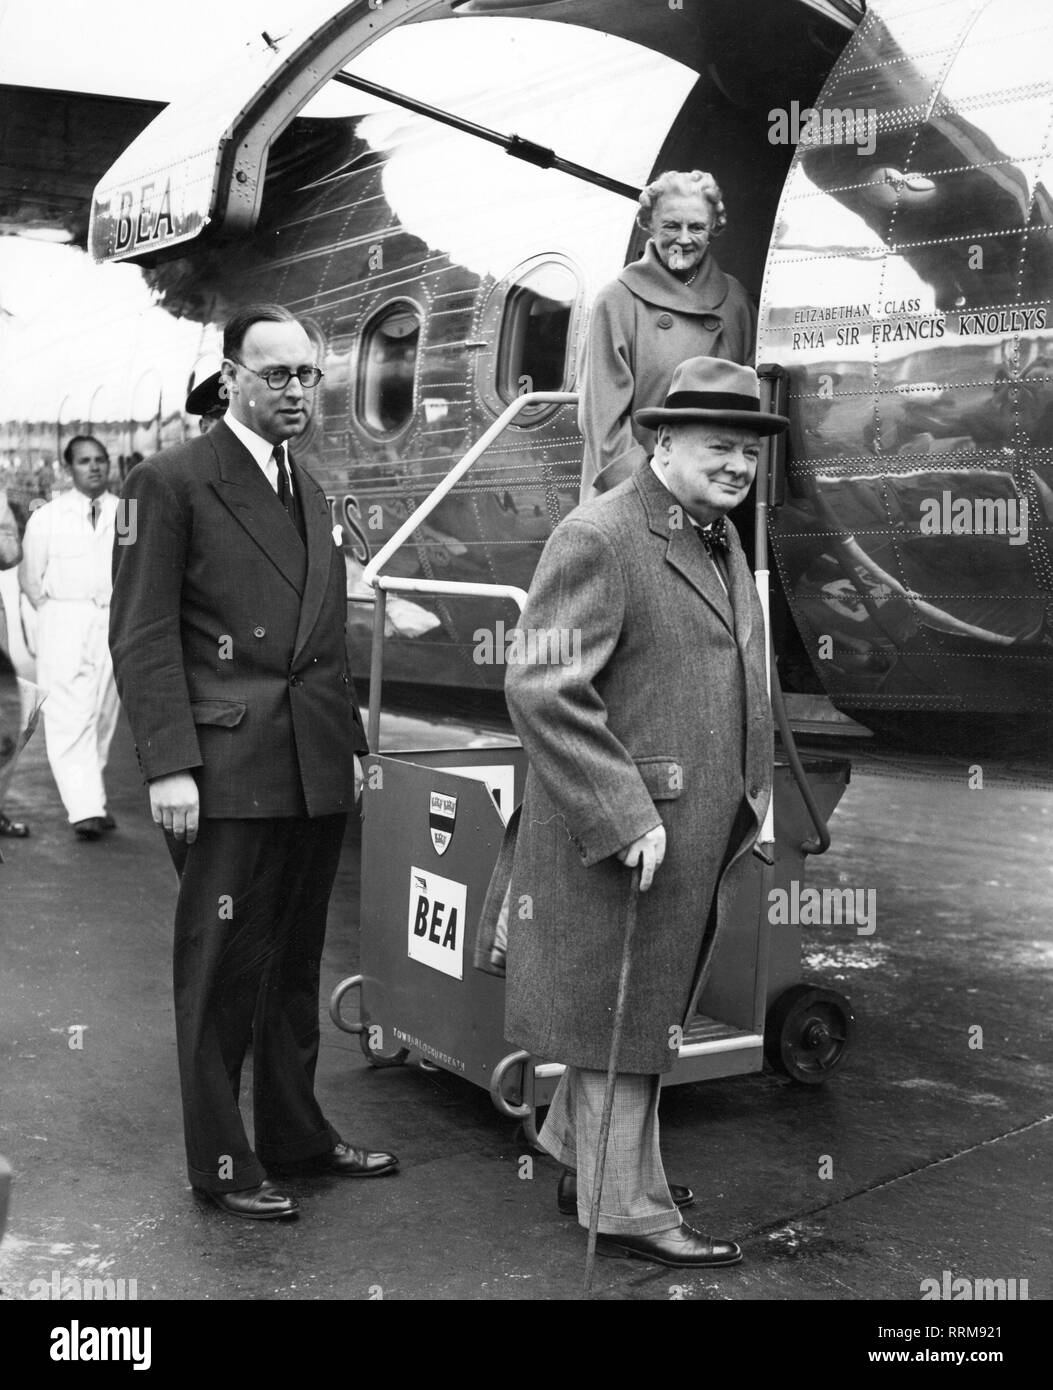 Churchill, Winston, 30.11.1874 - 24.1.1965, British politician (Cons.), Prime Minister 26.10.1951 - 7.4.1955, with wife Clementine at Heathrow Airport, before departure for the holiday in Southern France, 9.12.1952, Additional-Rights-Clearance-Info-Not-Available - Stock Image